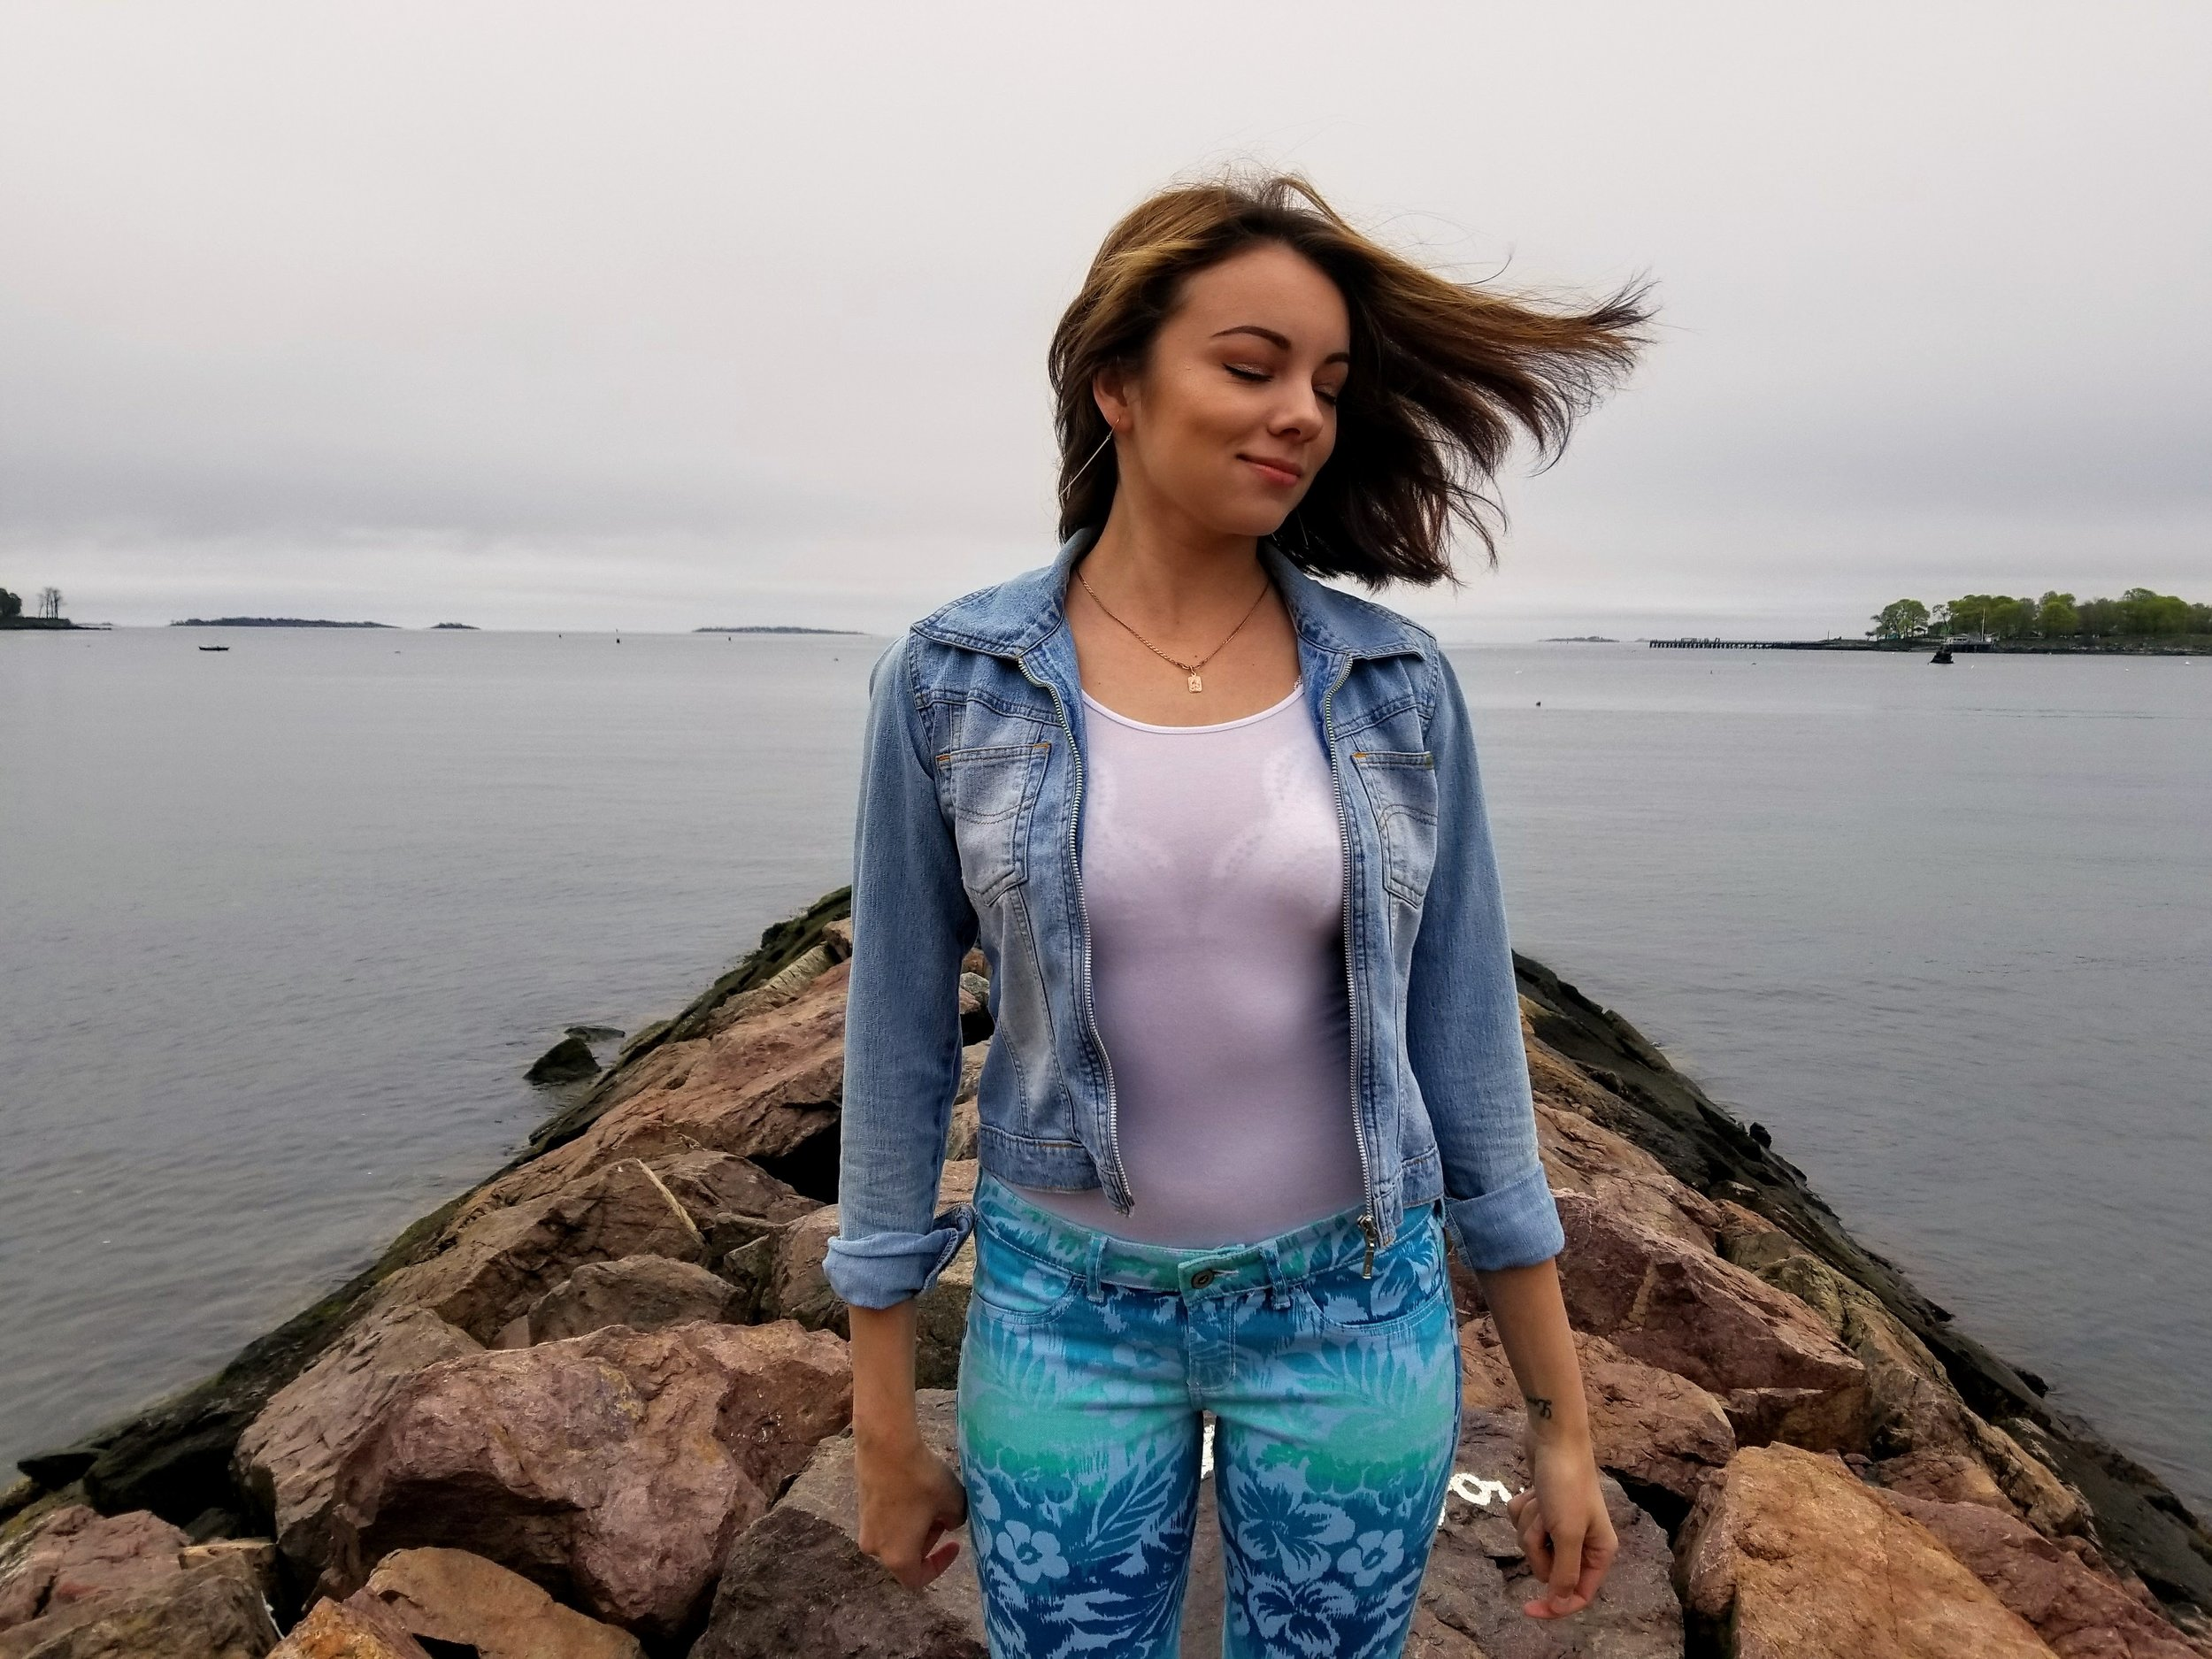 A blogger standing on the rocks by the beach flipping her hair.